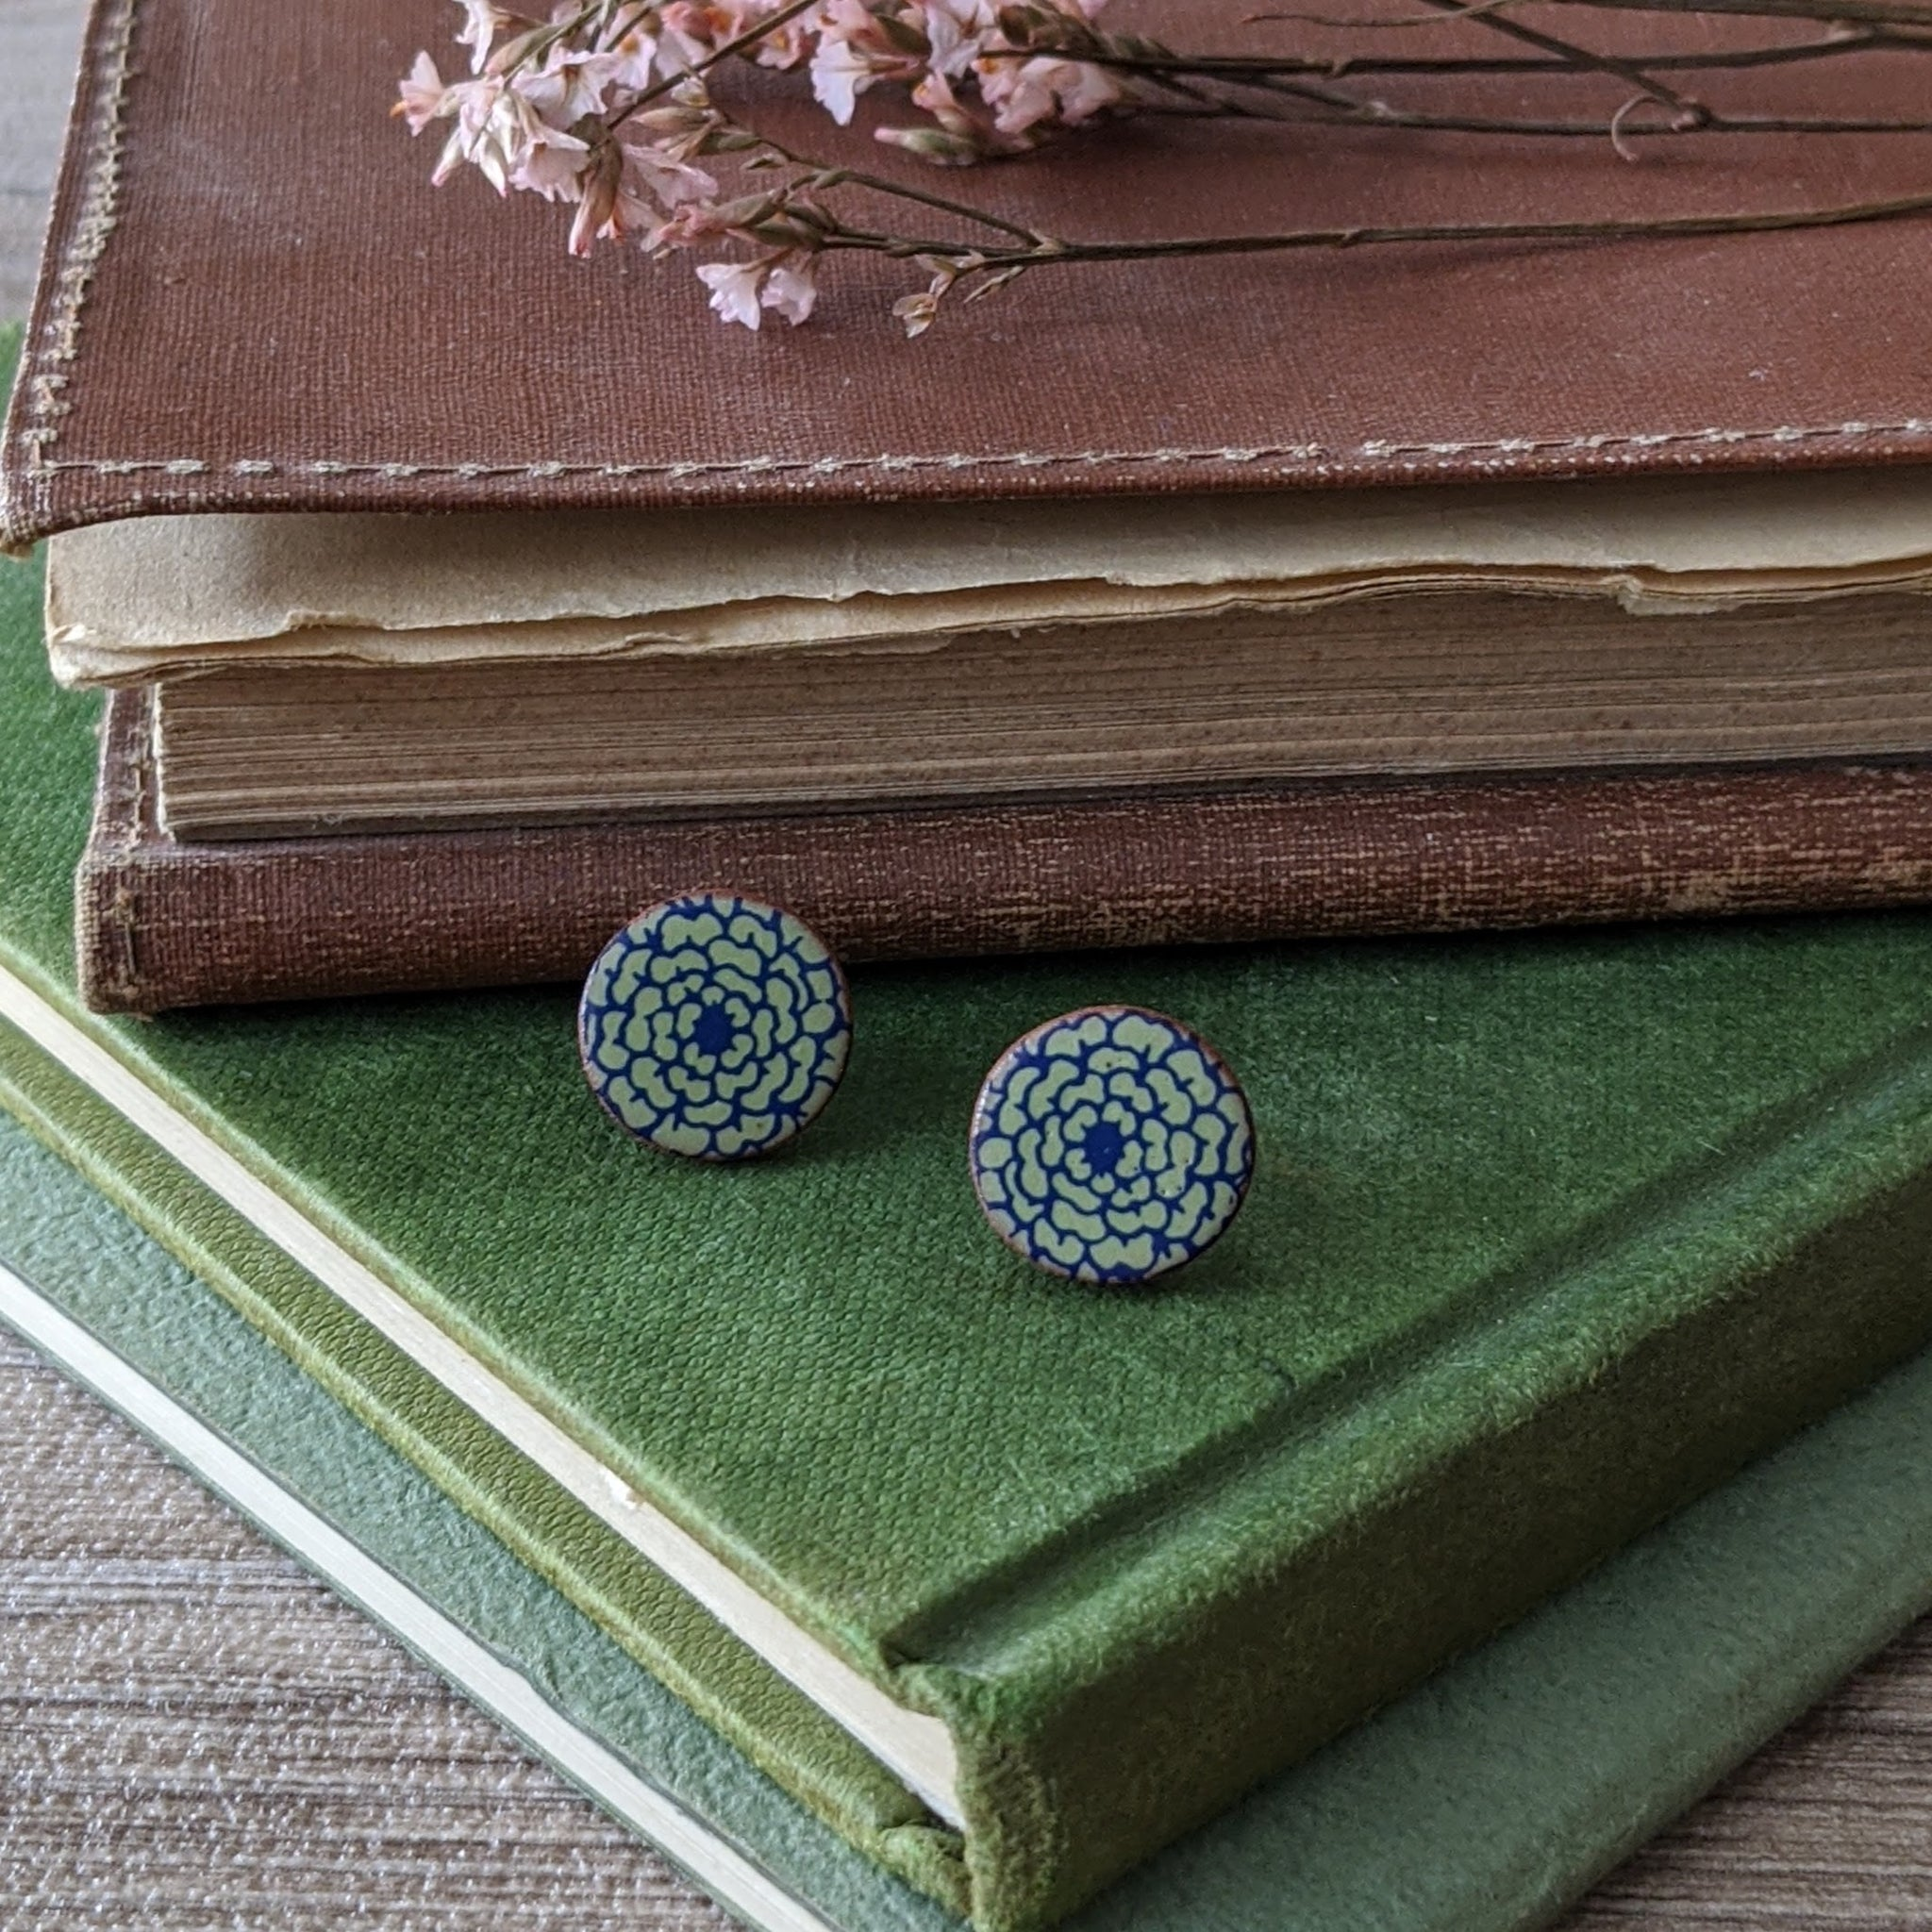 CERAMIC STUD EARRINGS (BLUE/GREEN FLORAL)